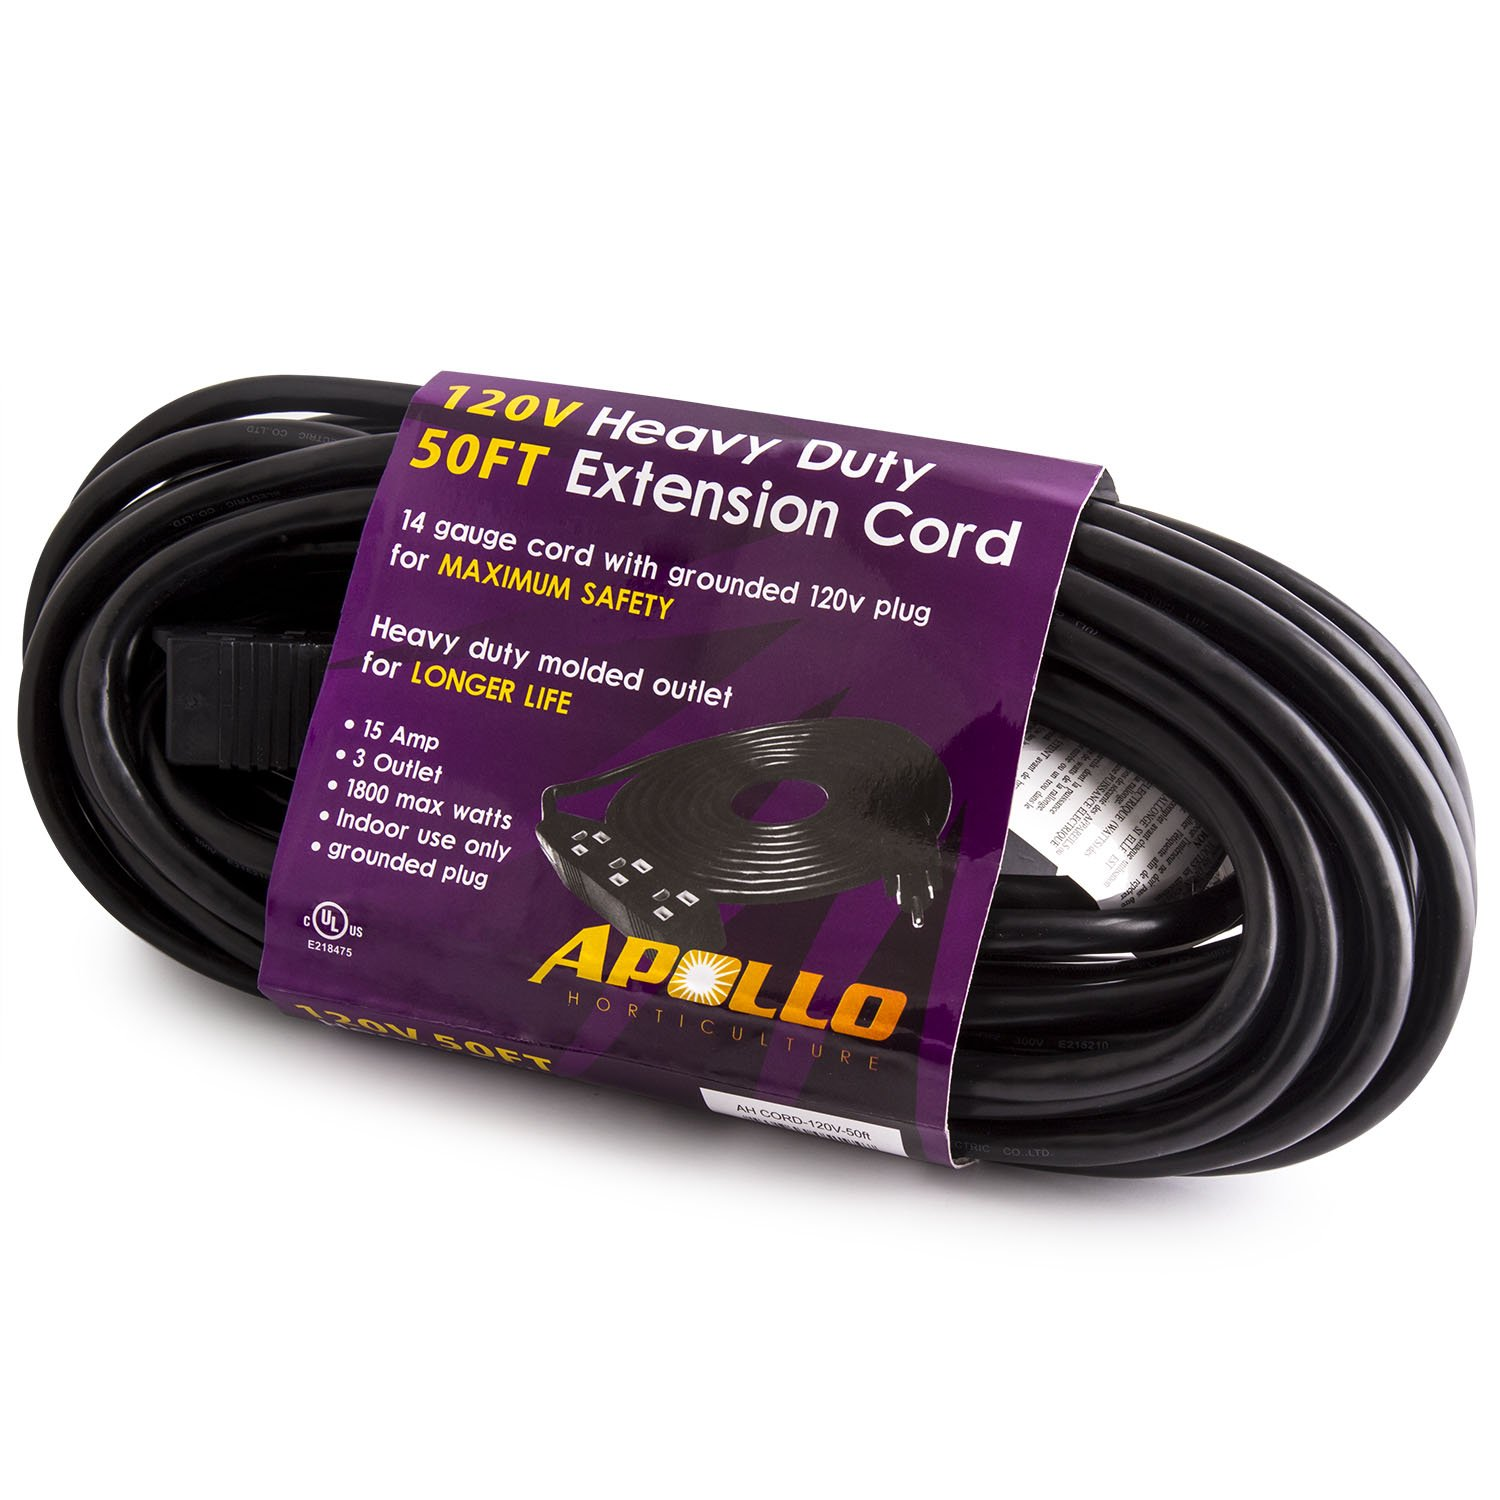 Apollo Horticulture 14 Gauge 120v Heavy Duty 50ft Extension Cord Grounded Plug Wiring With 3 Outlet Power Strip